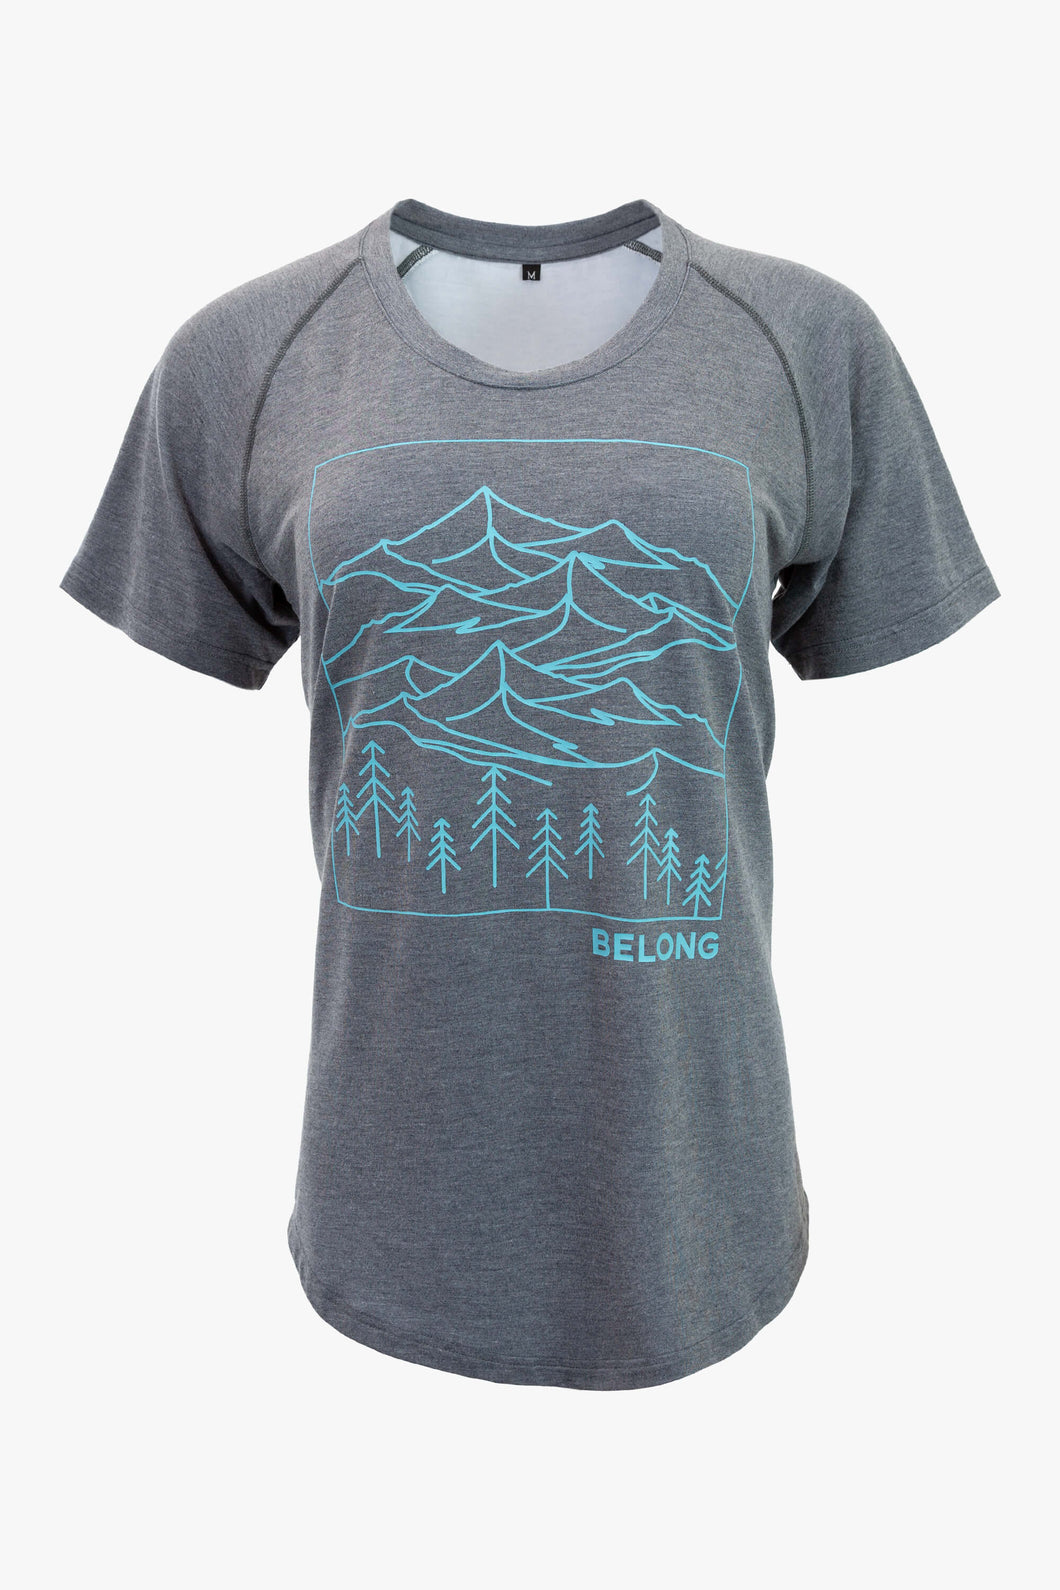 Women's Ridge Runner Tek Tee (Charcoal)